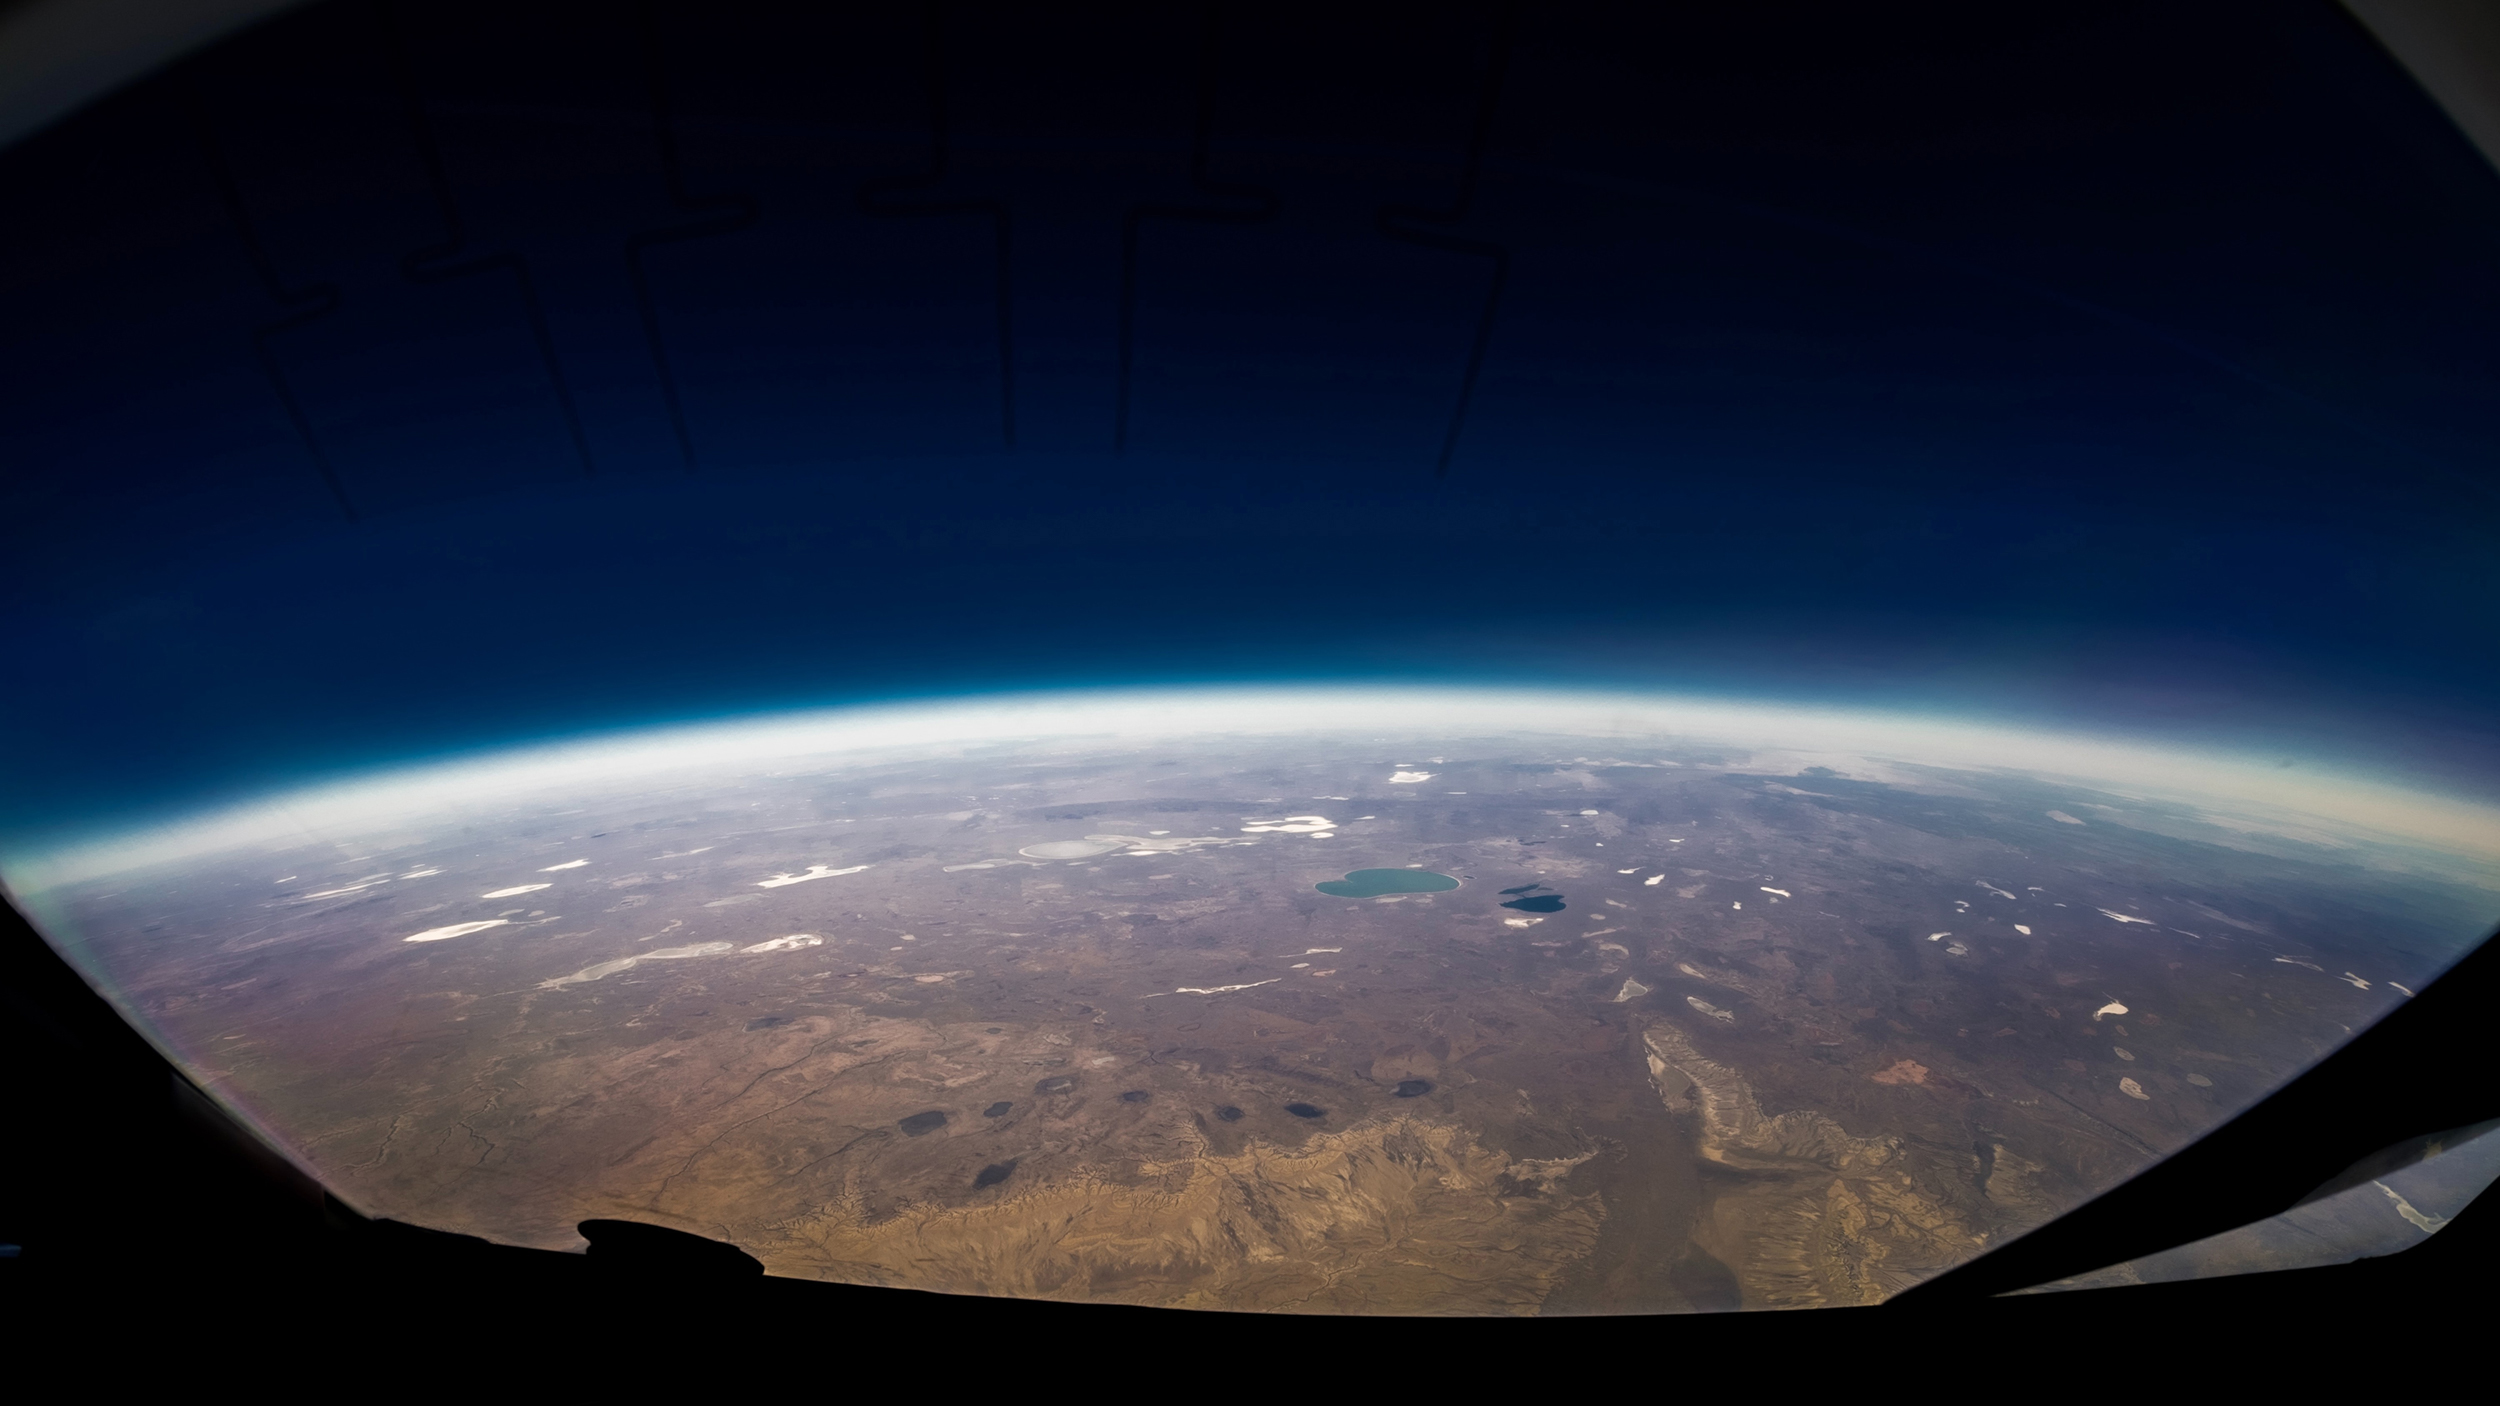 View of part of Earth from space